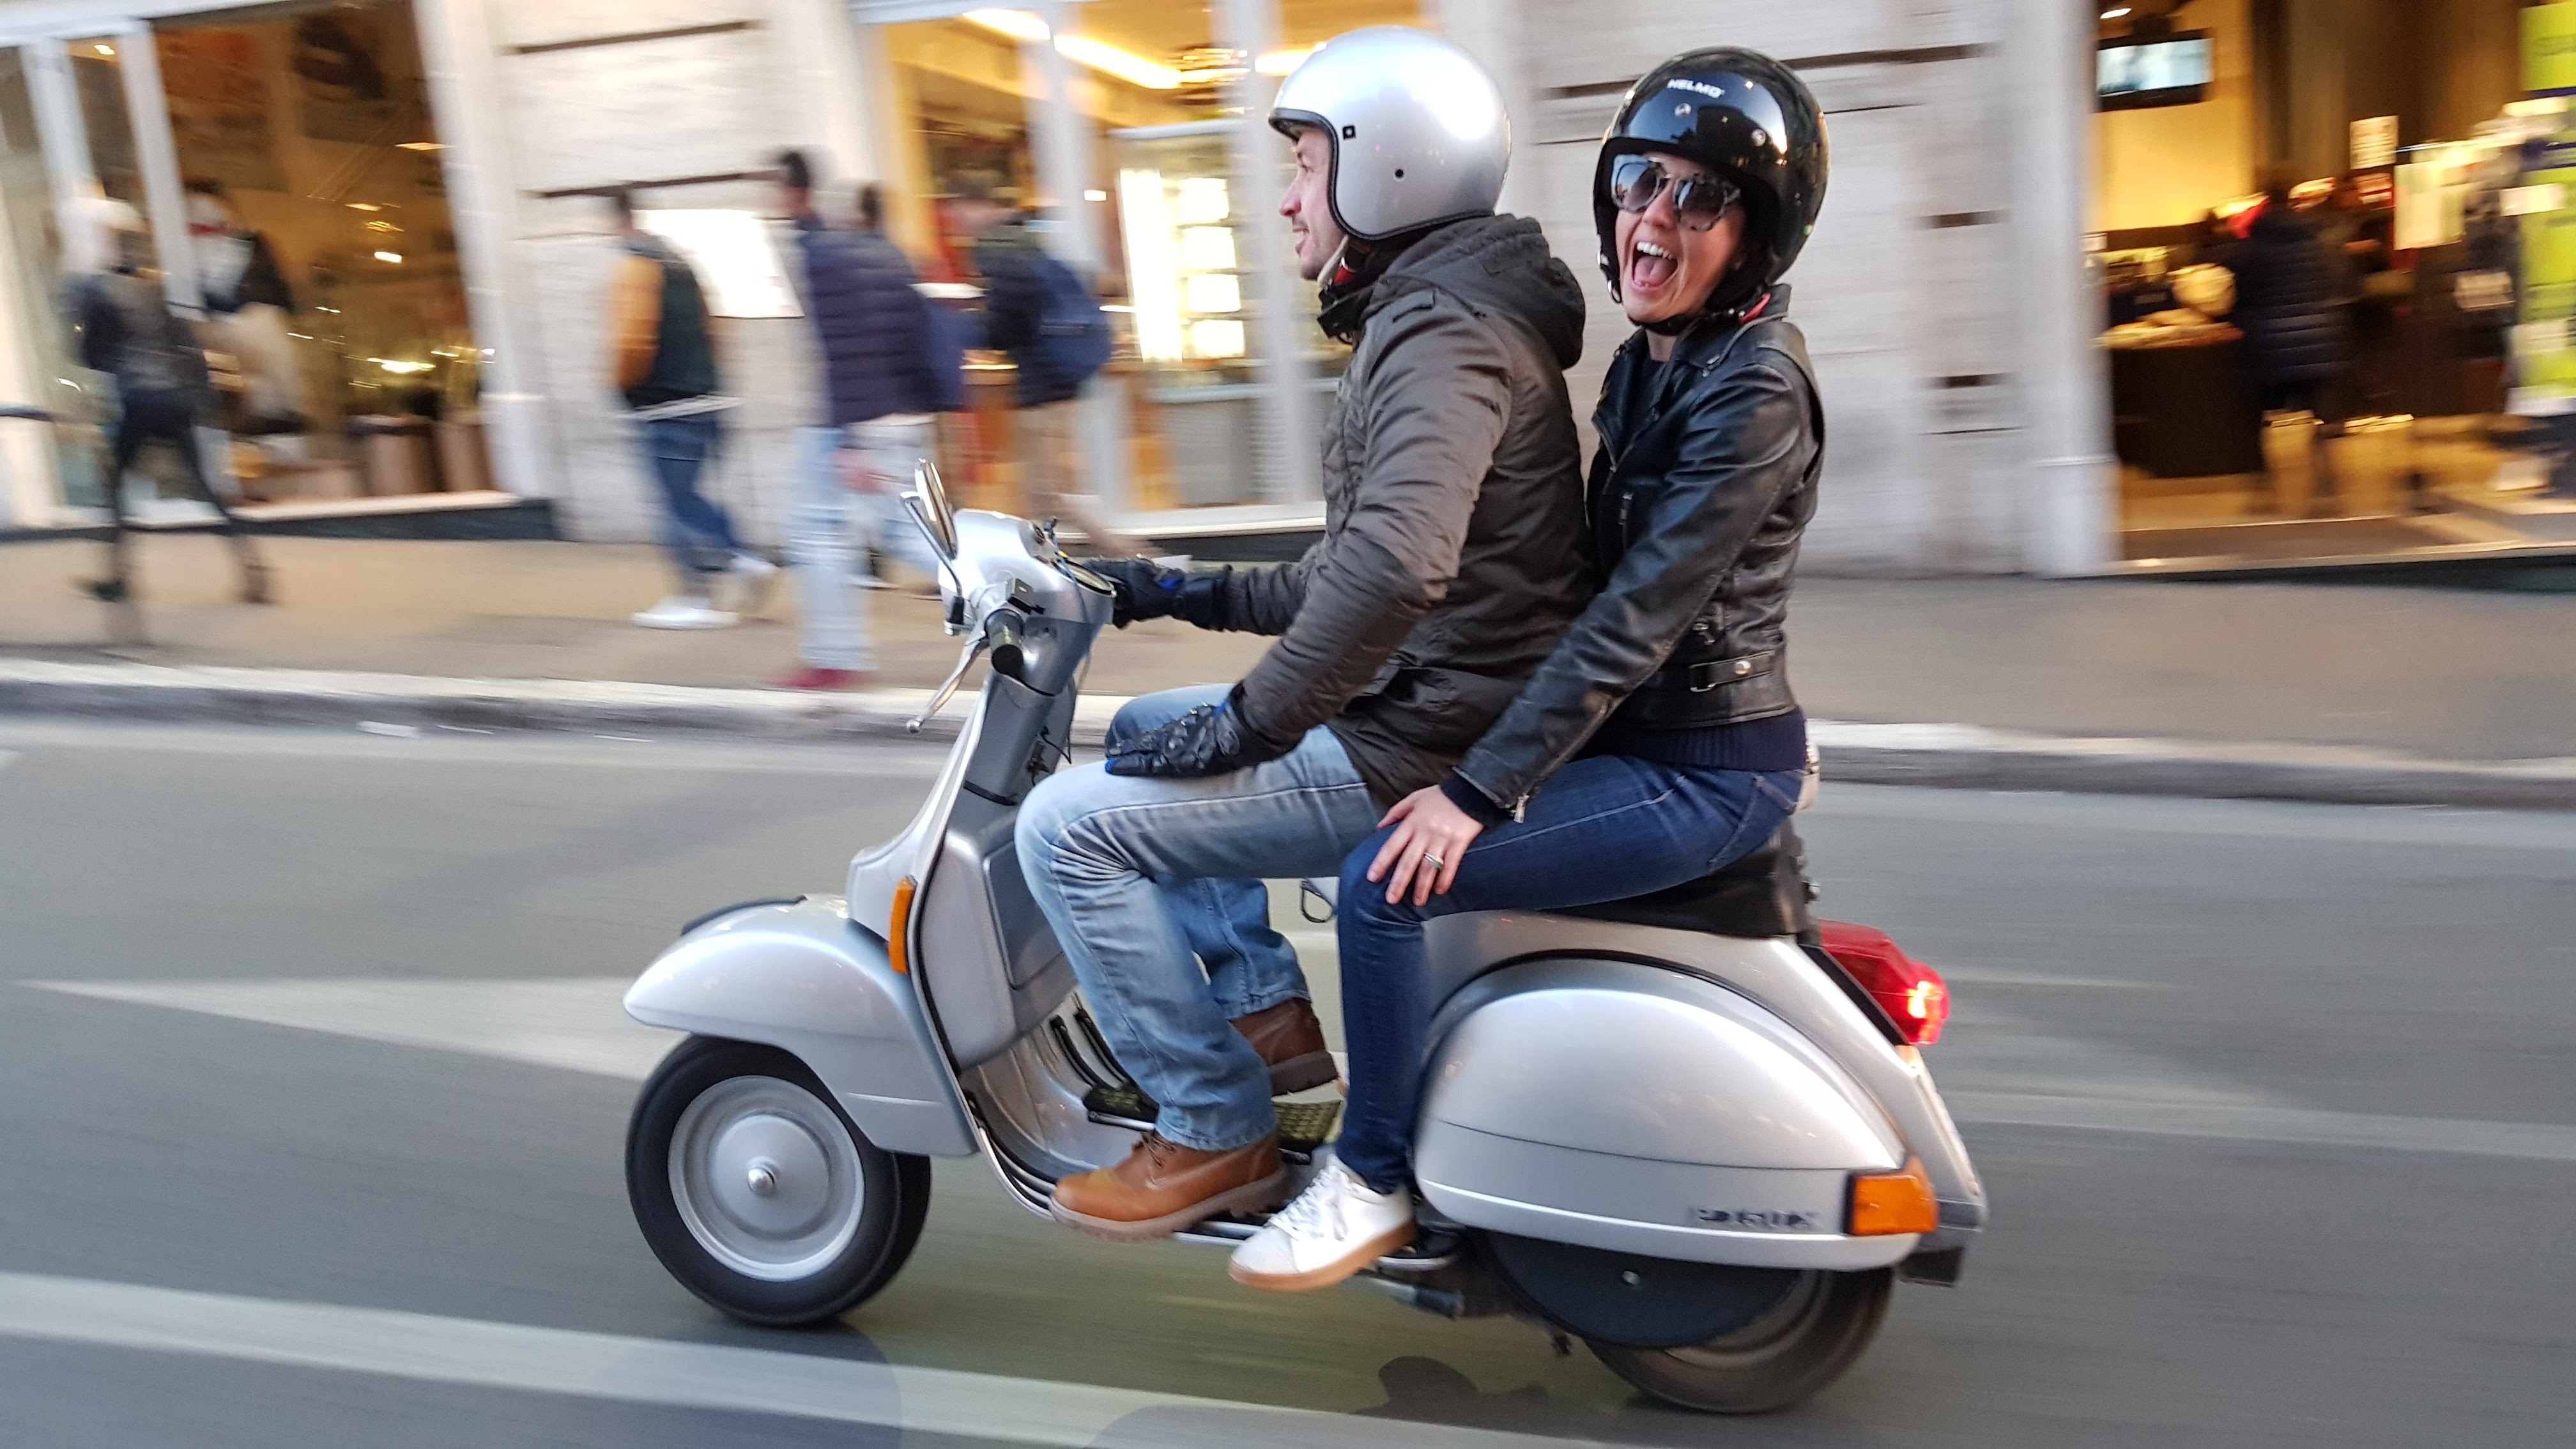 See Rome on a Vintage Vespa: The perfect way to tour the City! » EFTM